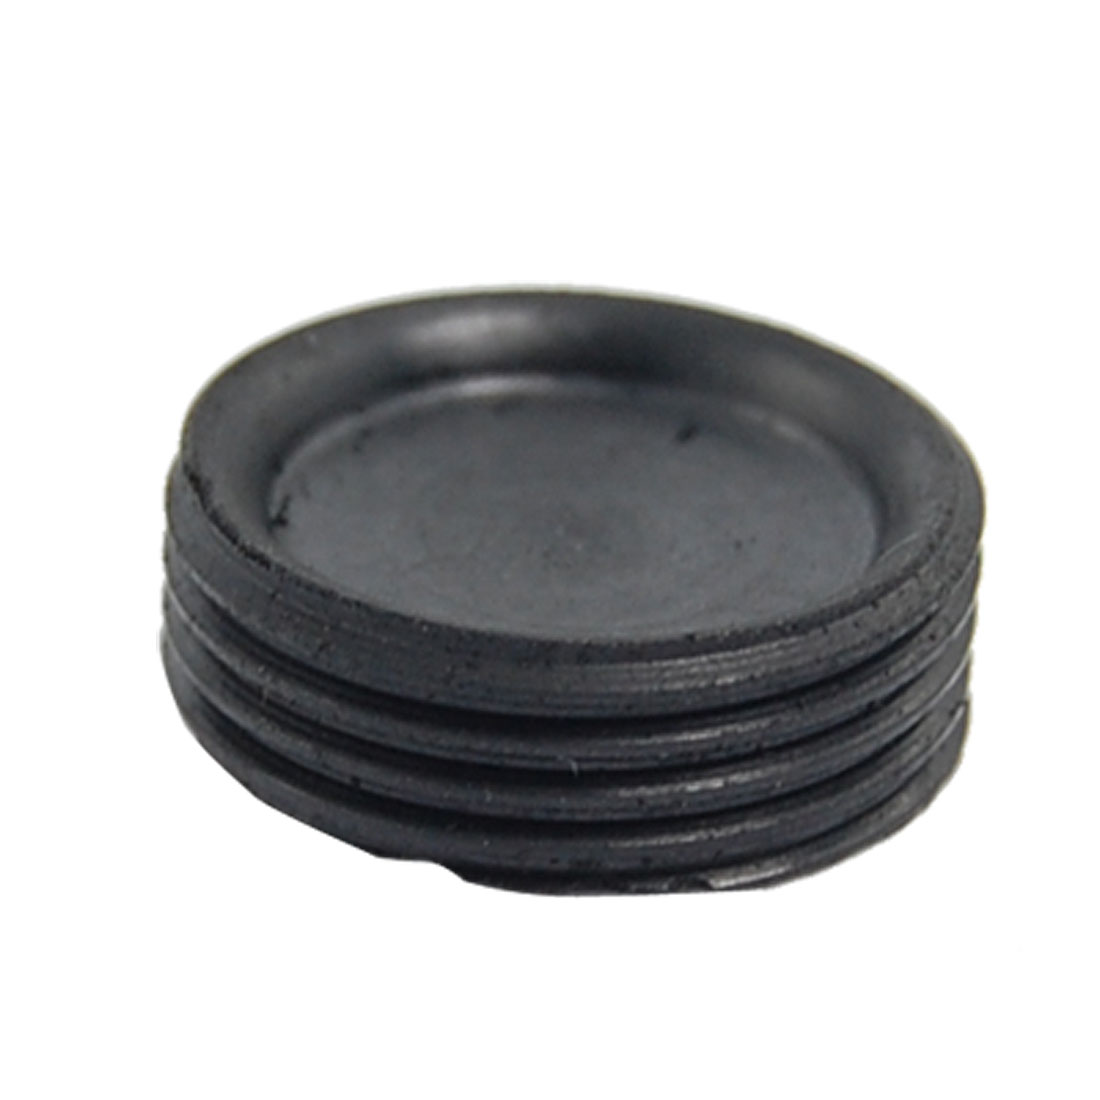 Motor 14.5mm Diameter Carbon Brush Holder Rear Cap Cover 20 Pcs